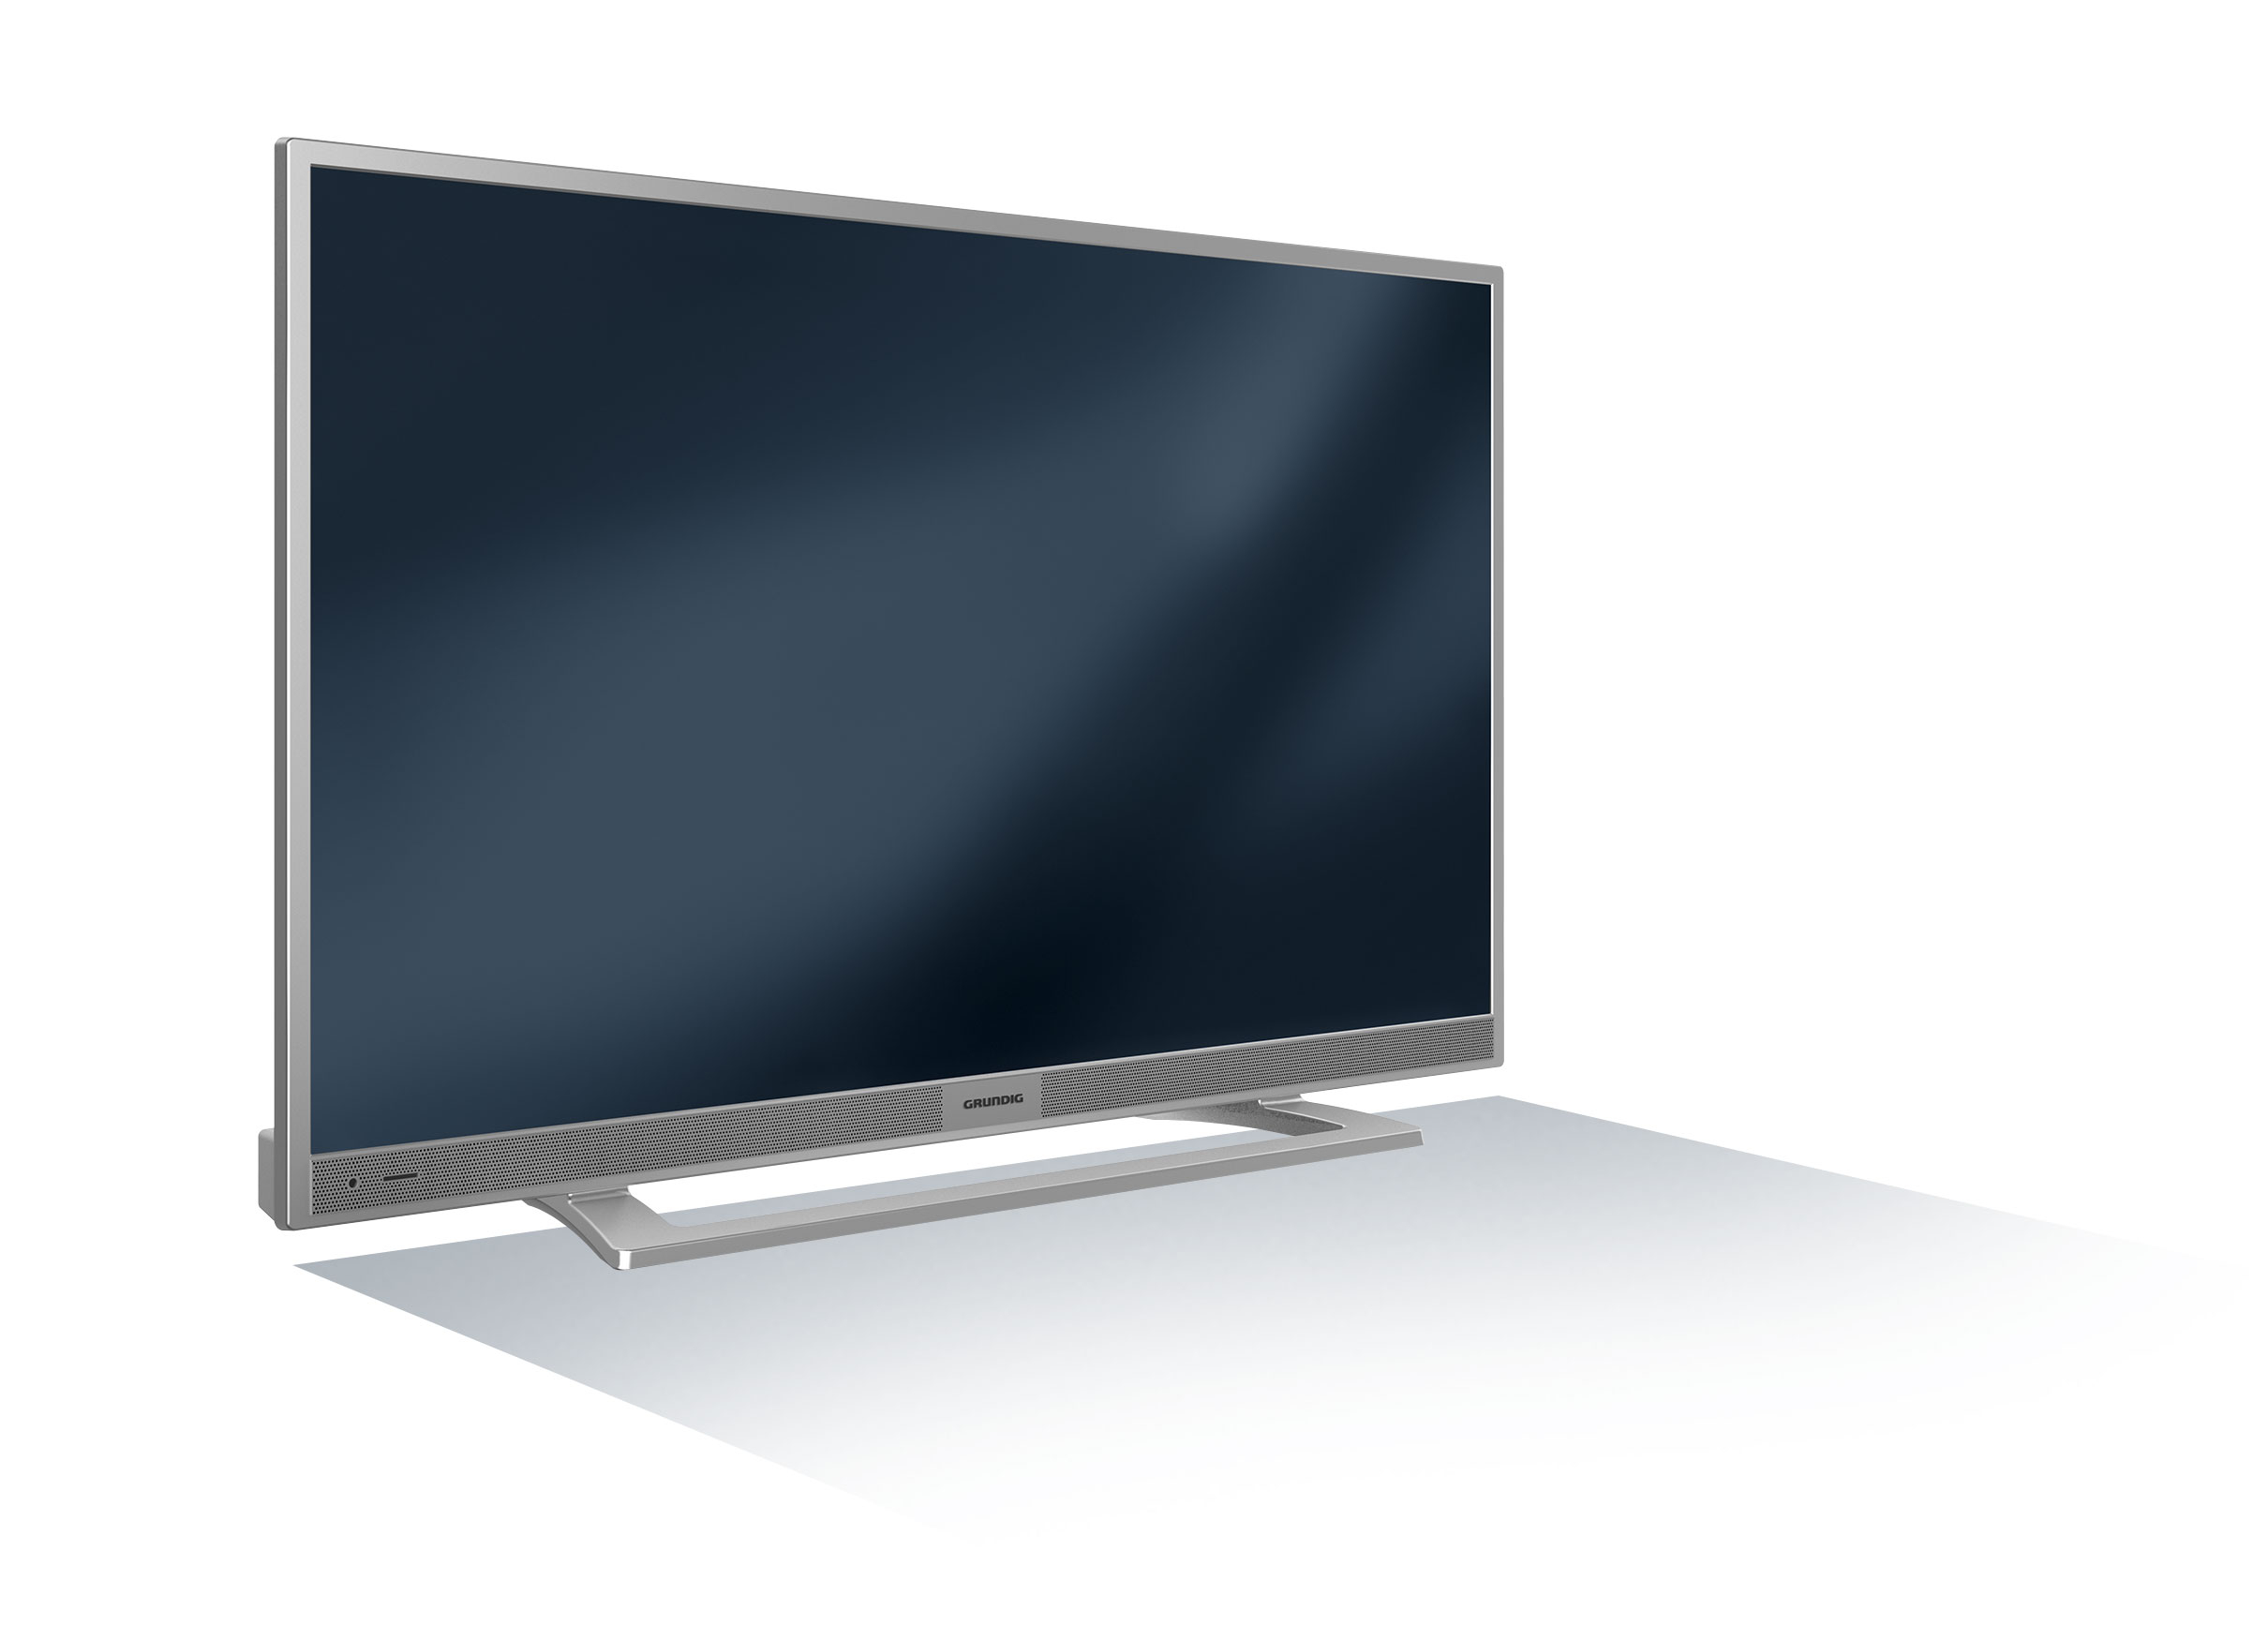 grundig led tv 22 vle 5520 sg silber 22 zoll 55 cm fernseher ebay. Black Bedroom Furniture Sets. Home Design Ideas